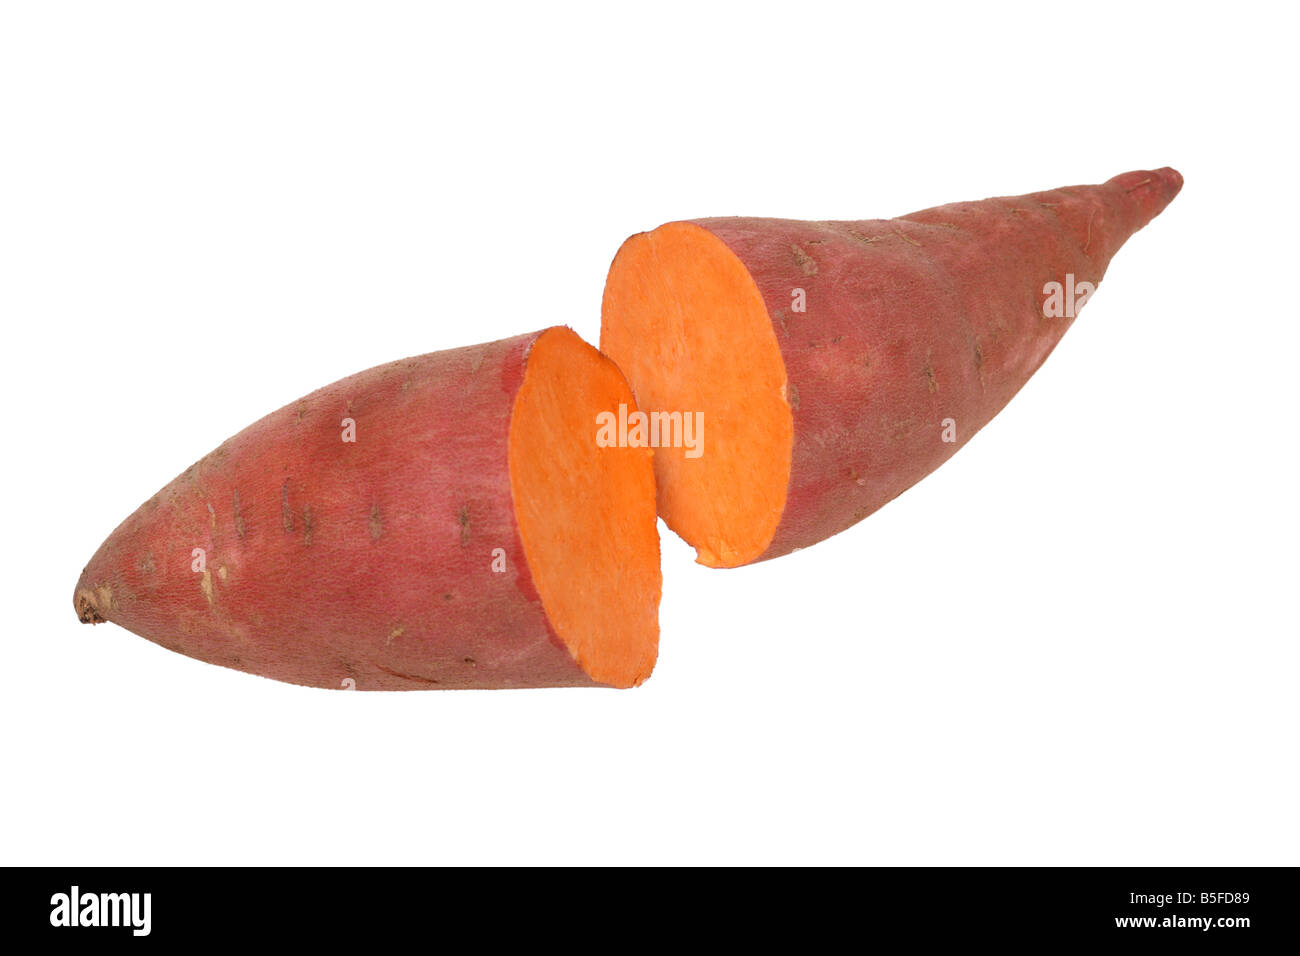 Yam cut in half cutout on white background Stock Photo